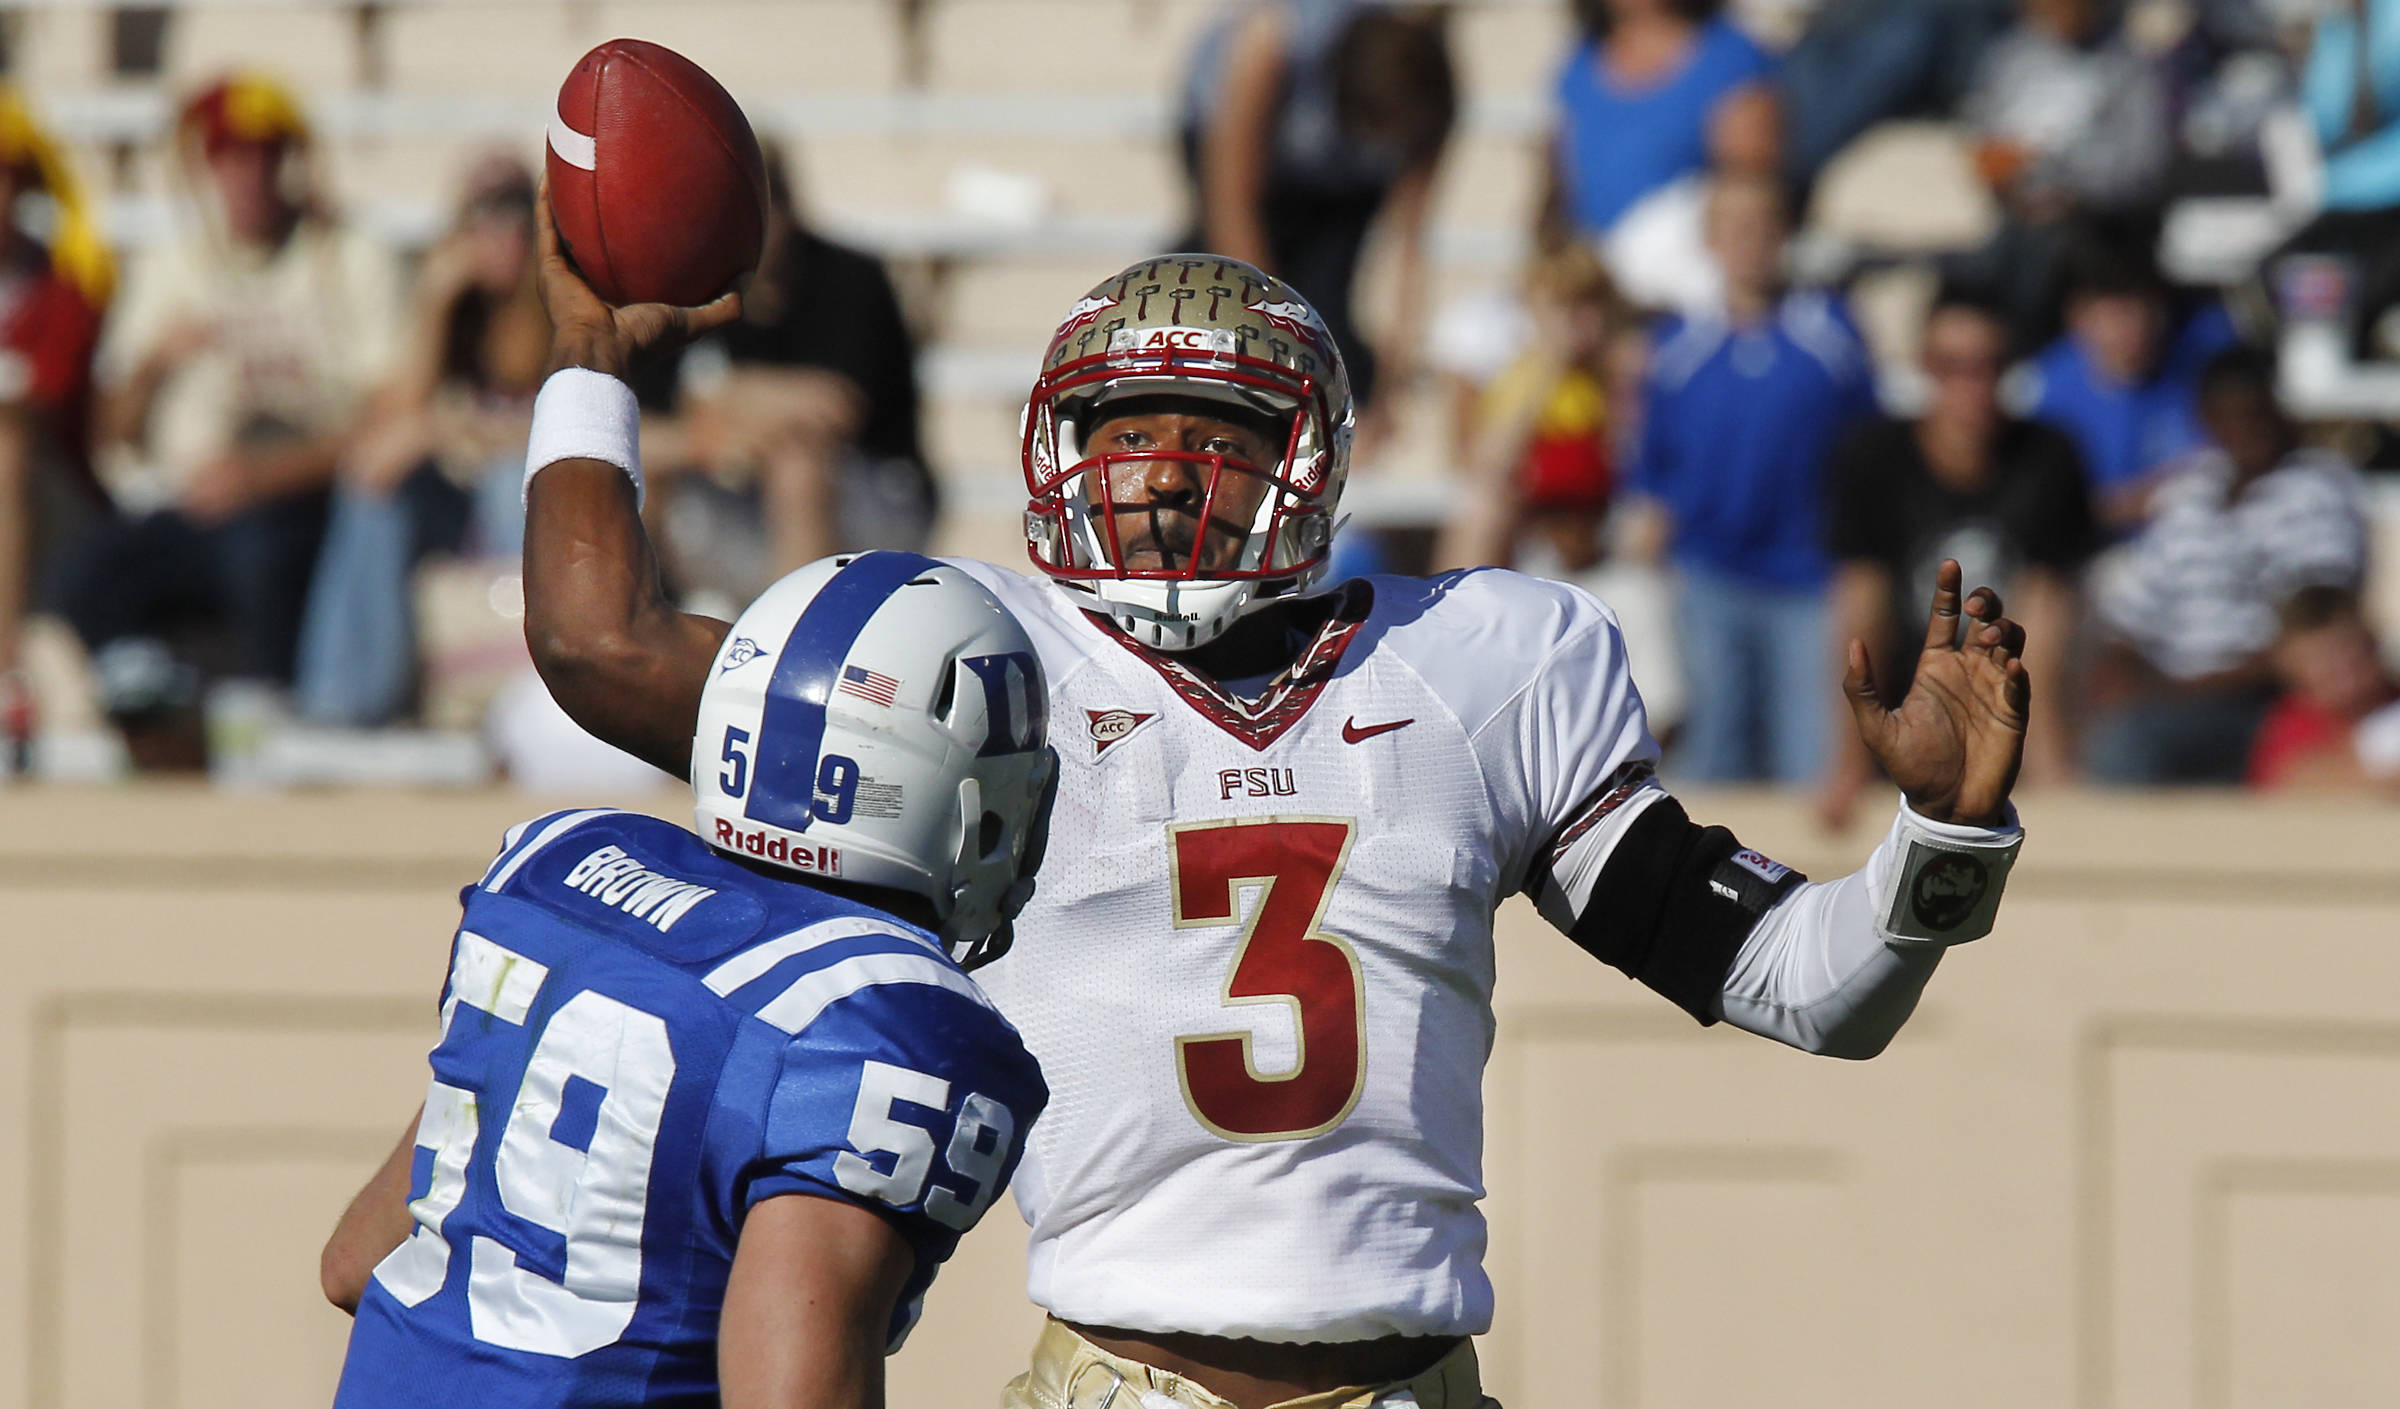 Florida State quarterback EJ Manuel (3) looks to pass as Duke linebacker Kelby Brown (59) defends. (AP Photo/The News & Observer, Chuck Liddy)